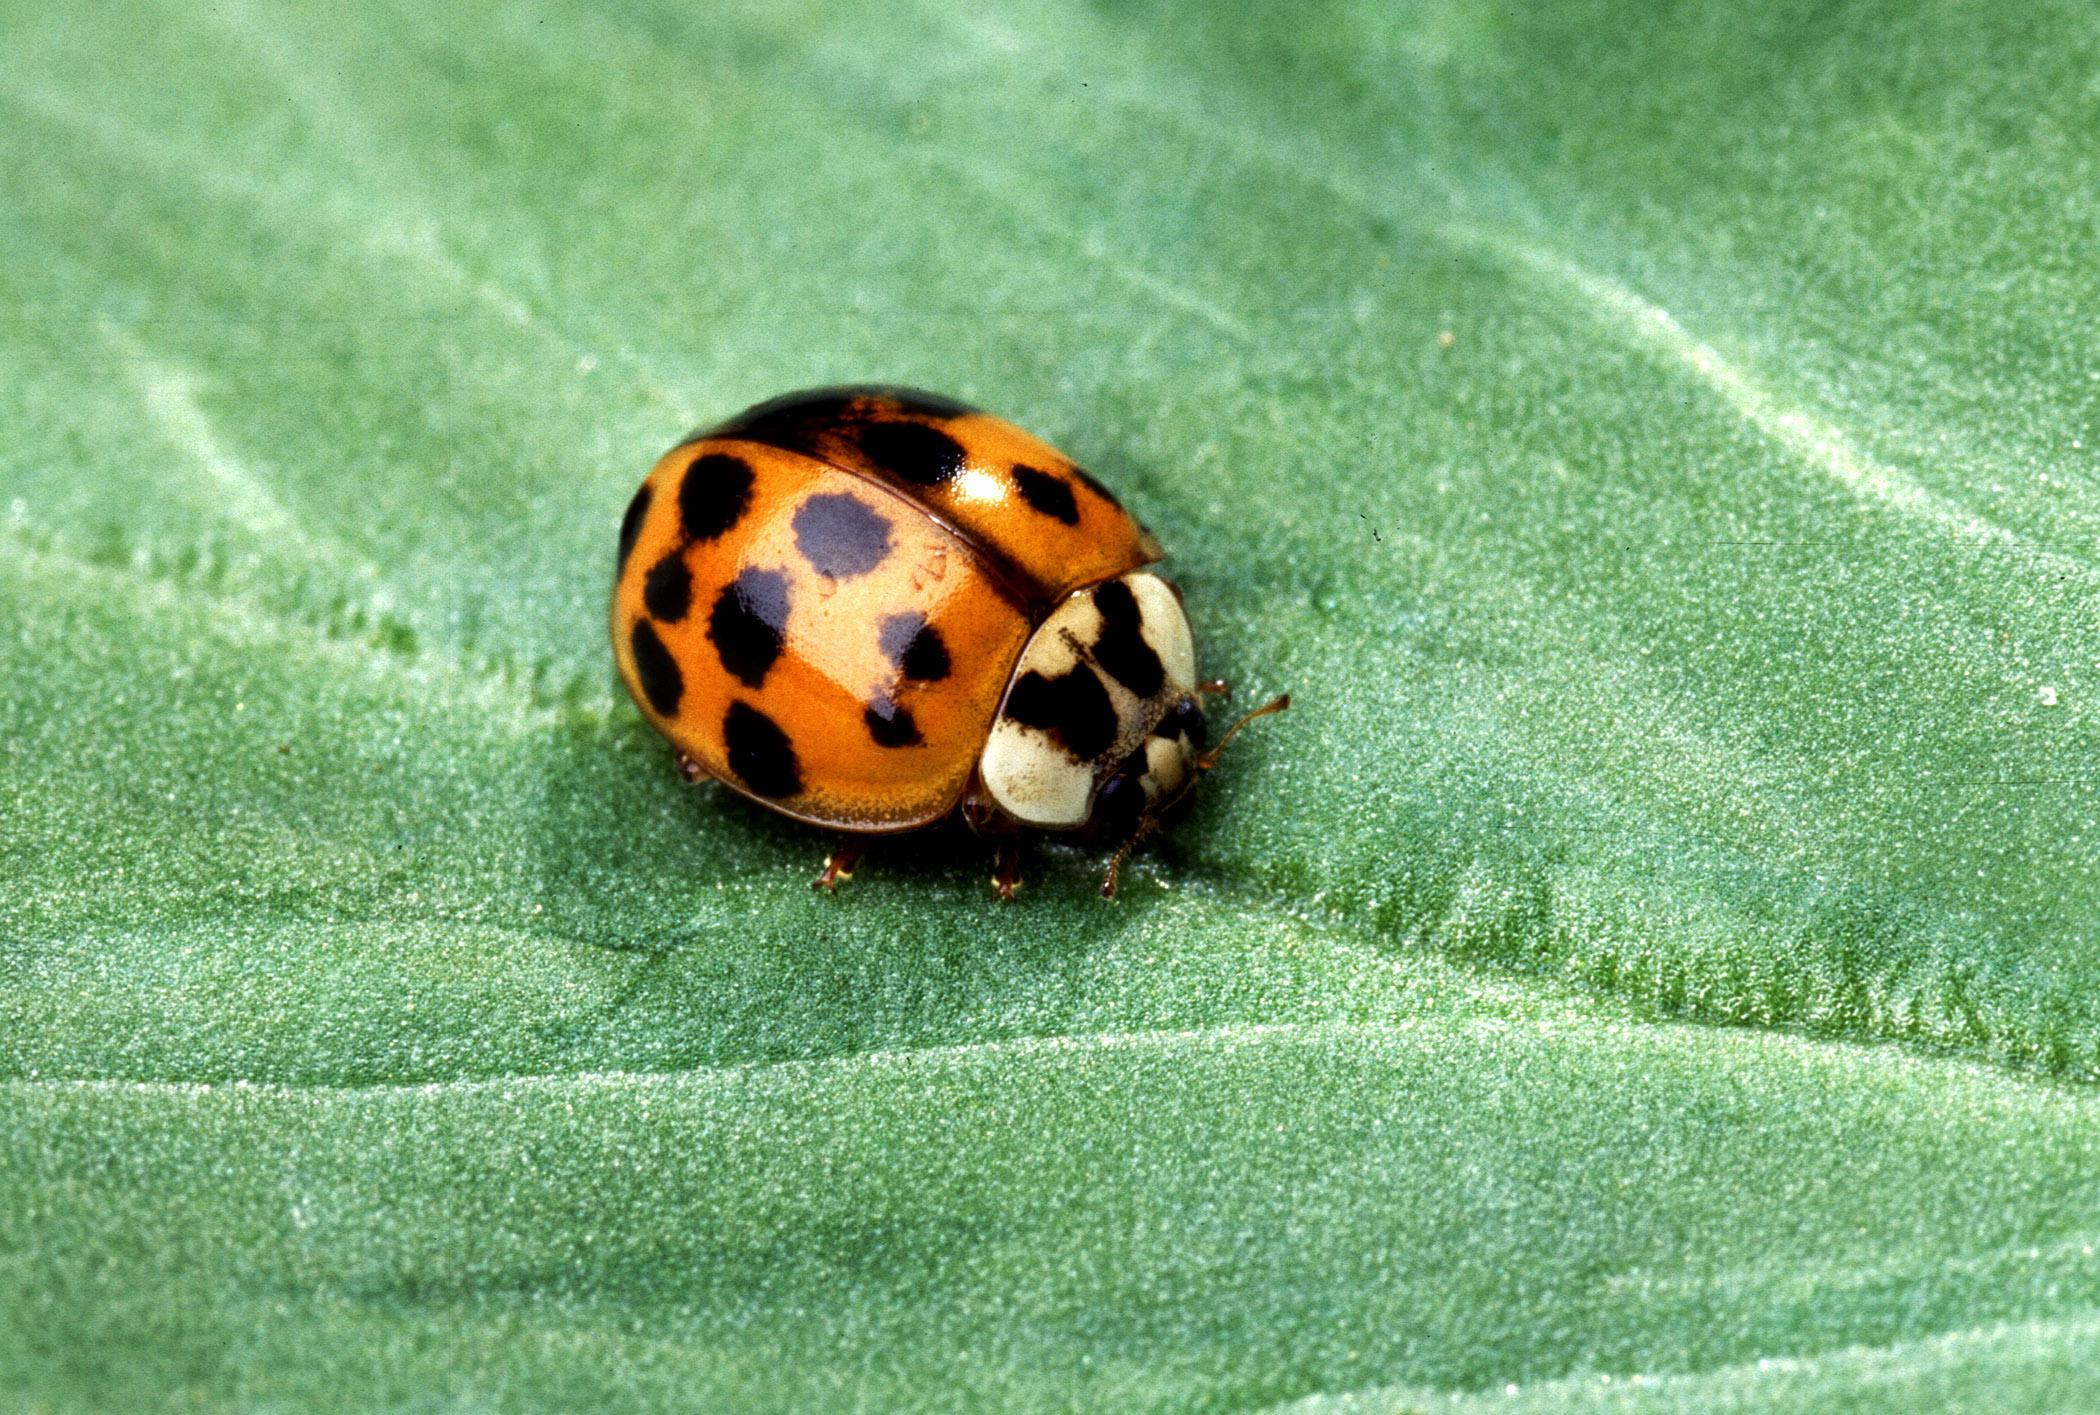 Mississippi homeowners can keep out insect pests, such as this Asian lady beetle, by screening soffit vents and using silicone caulk to seal cracks around the house. (Photo courtesy of USDA-ARS/Scott Bauer)